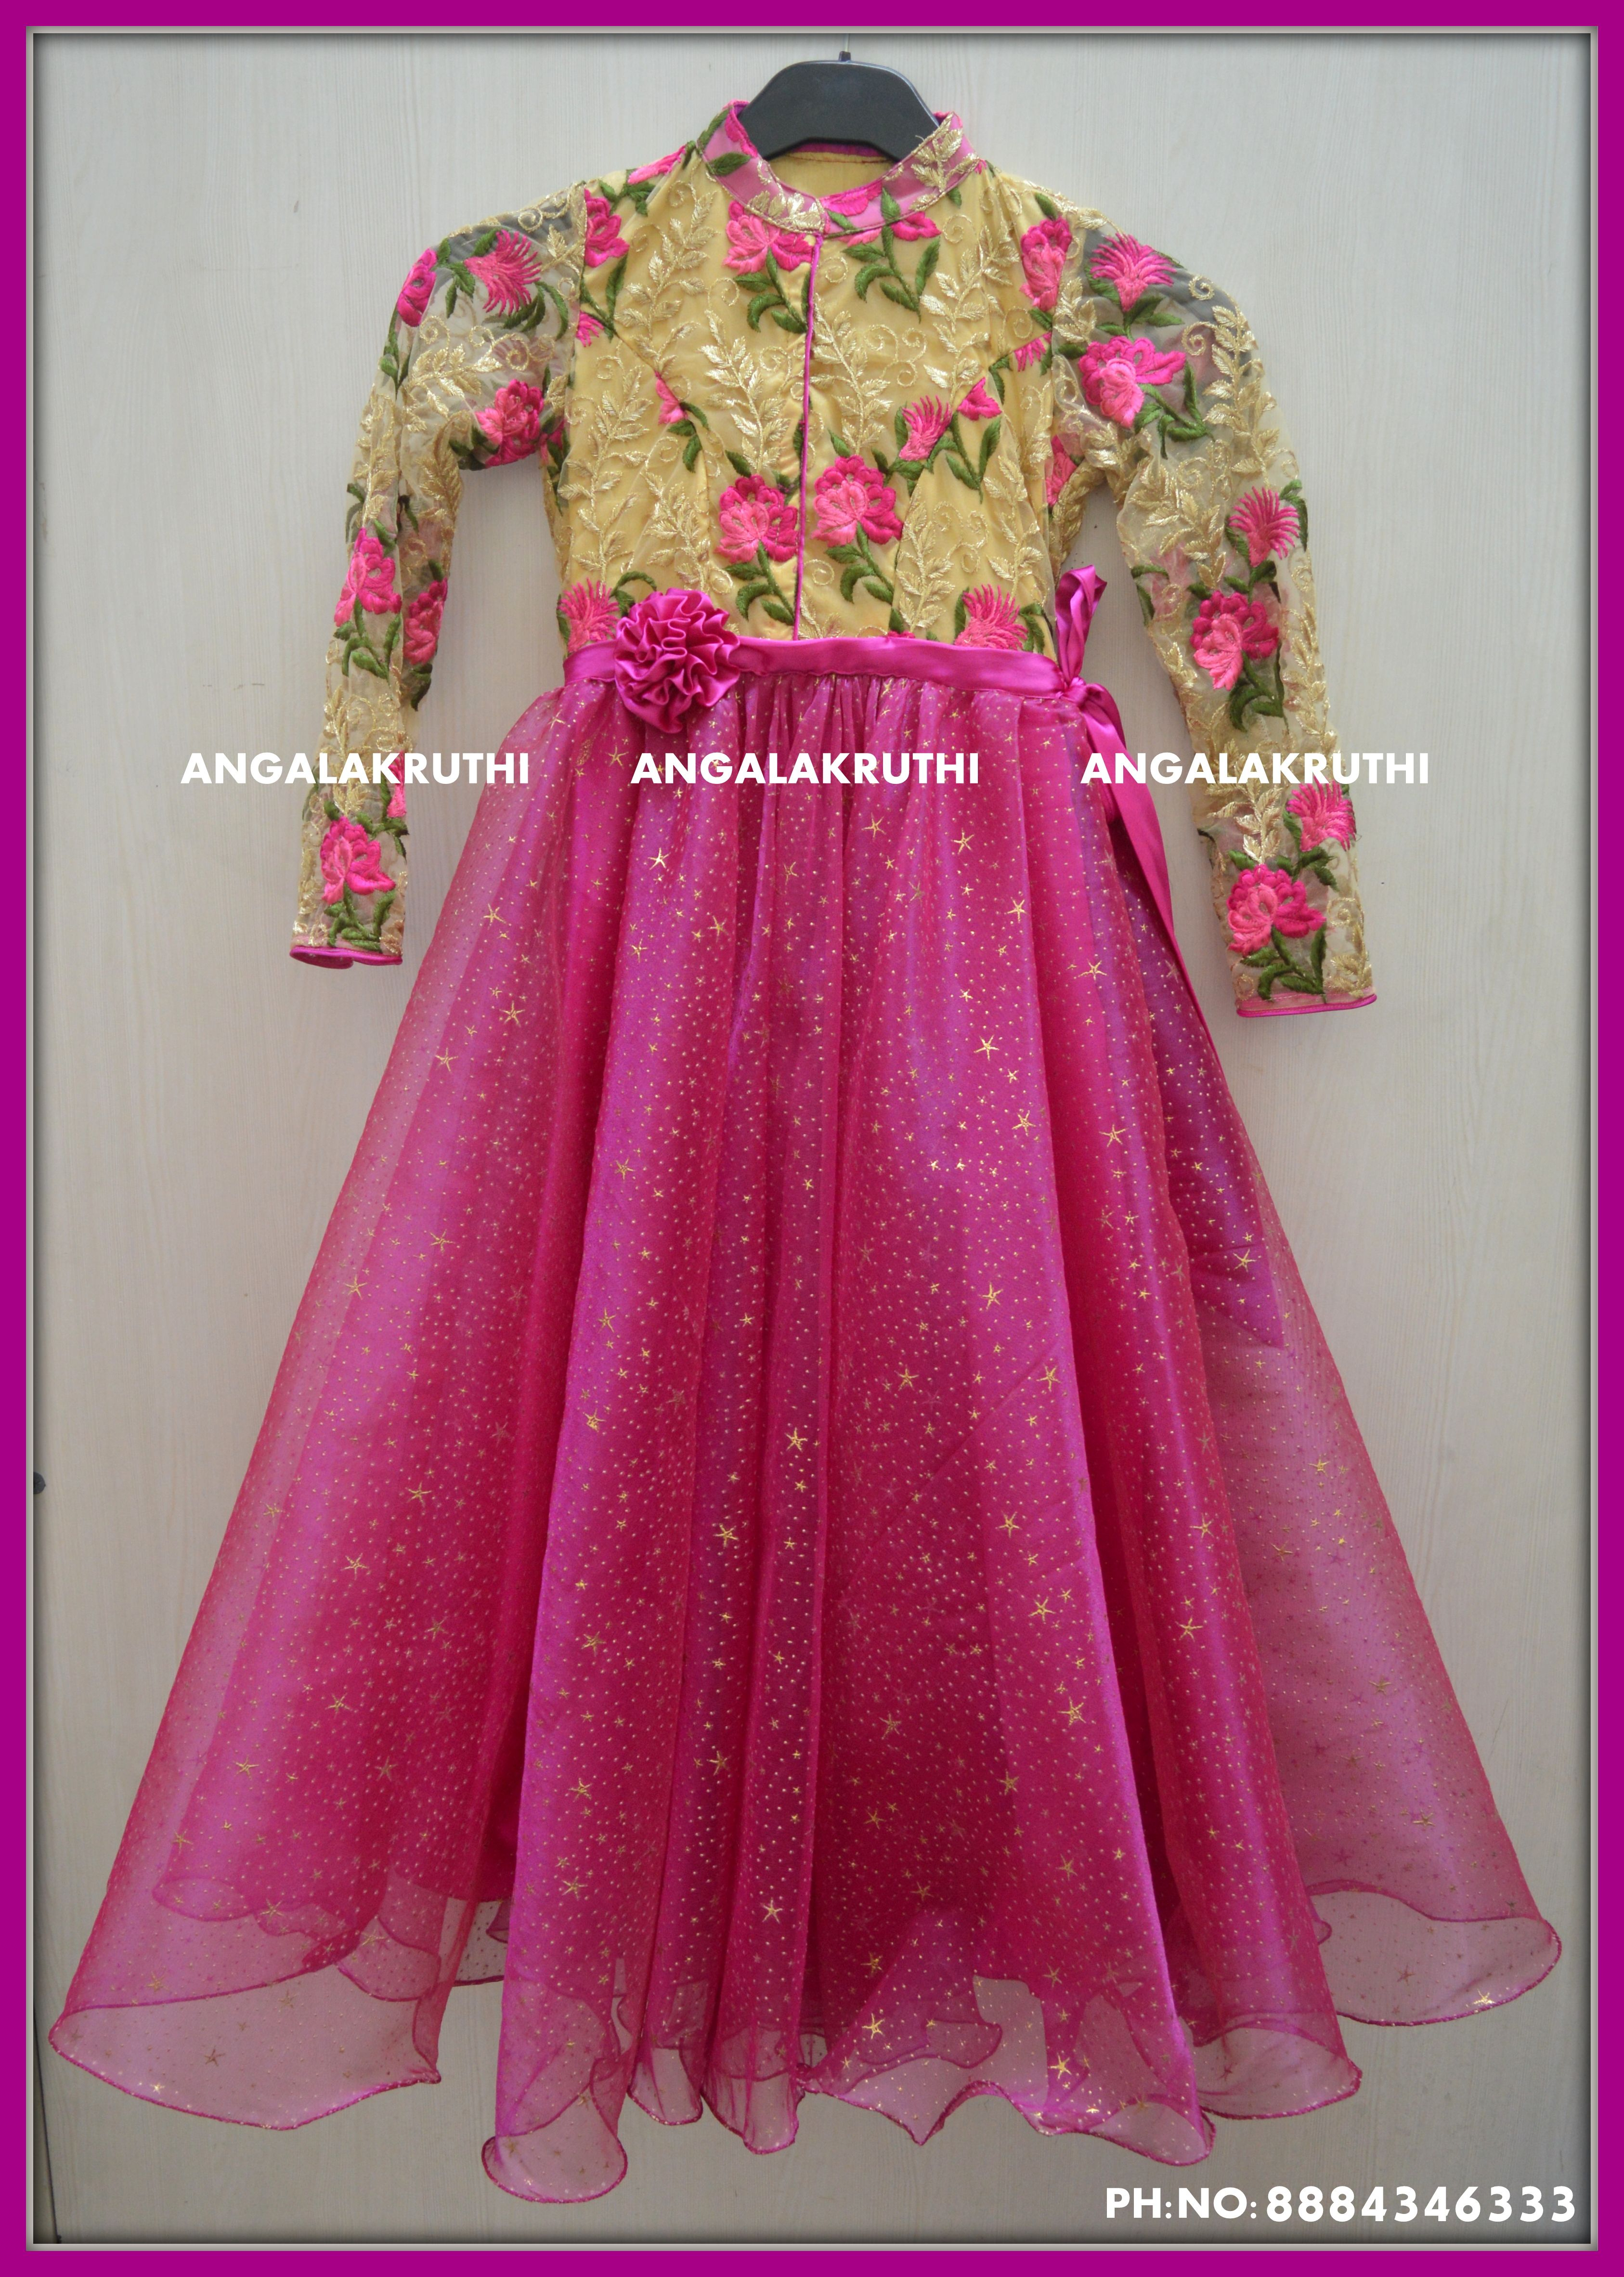 0c7fe957b9d #kids frock with floral and pink designs by Angalakruthi #designer kids  frock by Angalakruthi -Bangalore india #Custom designer boutique with online  order ...